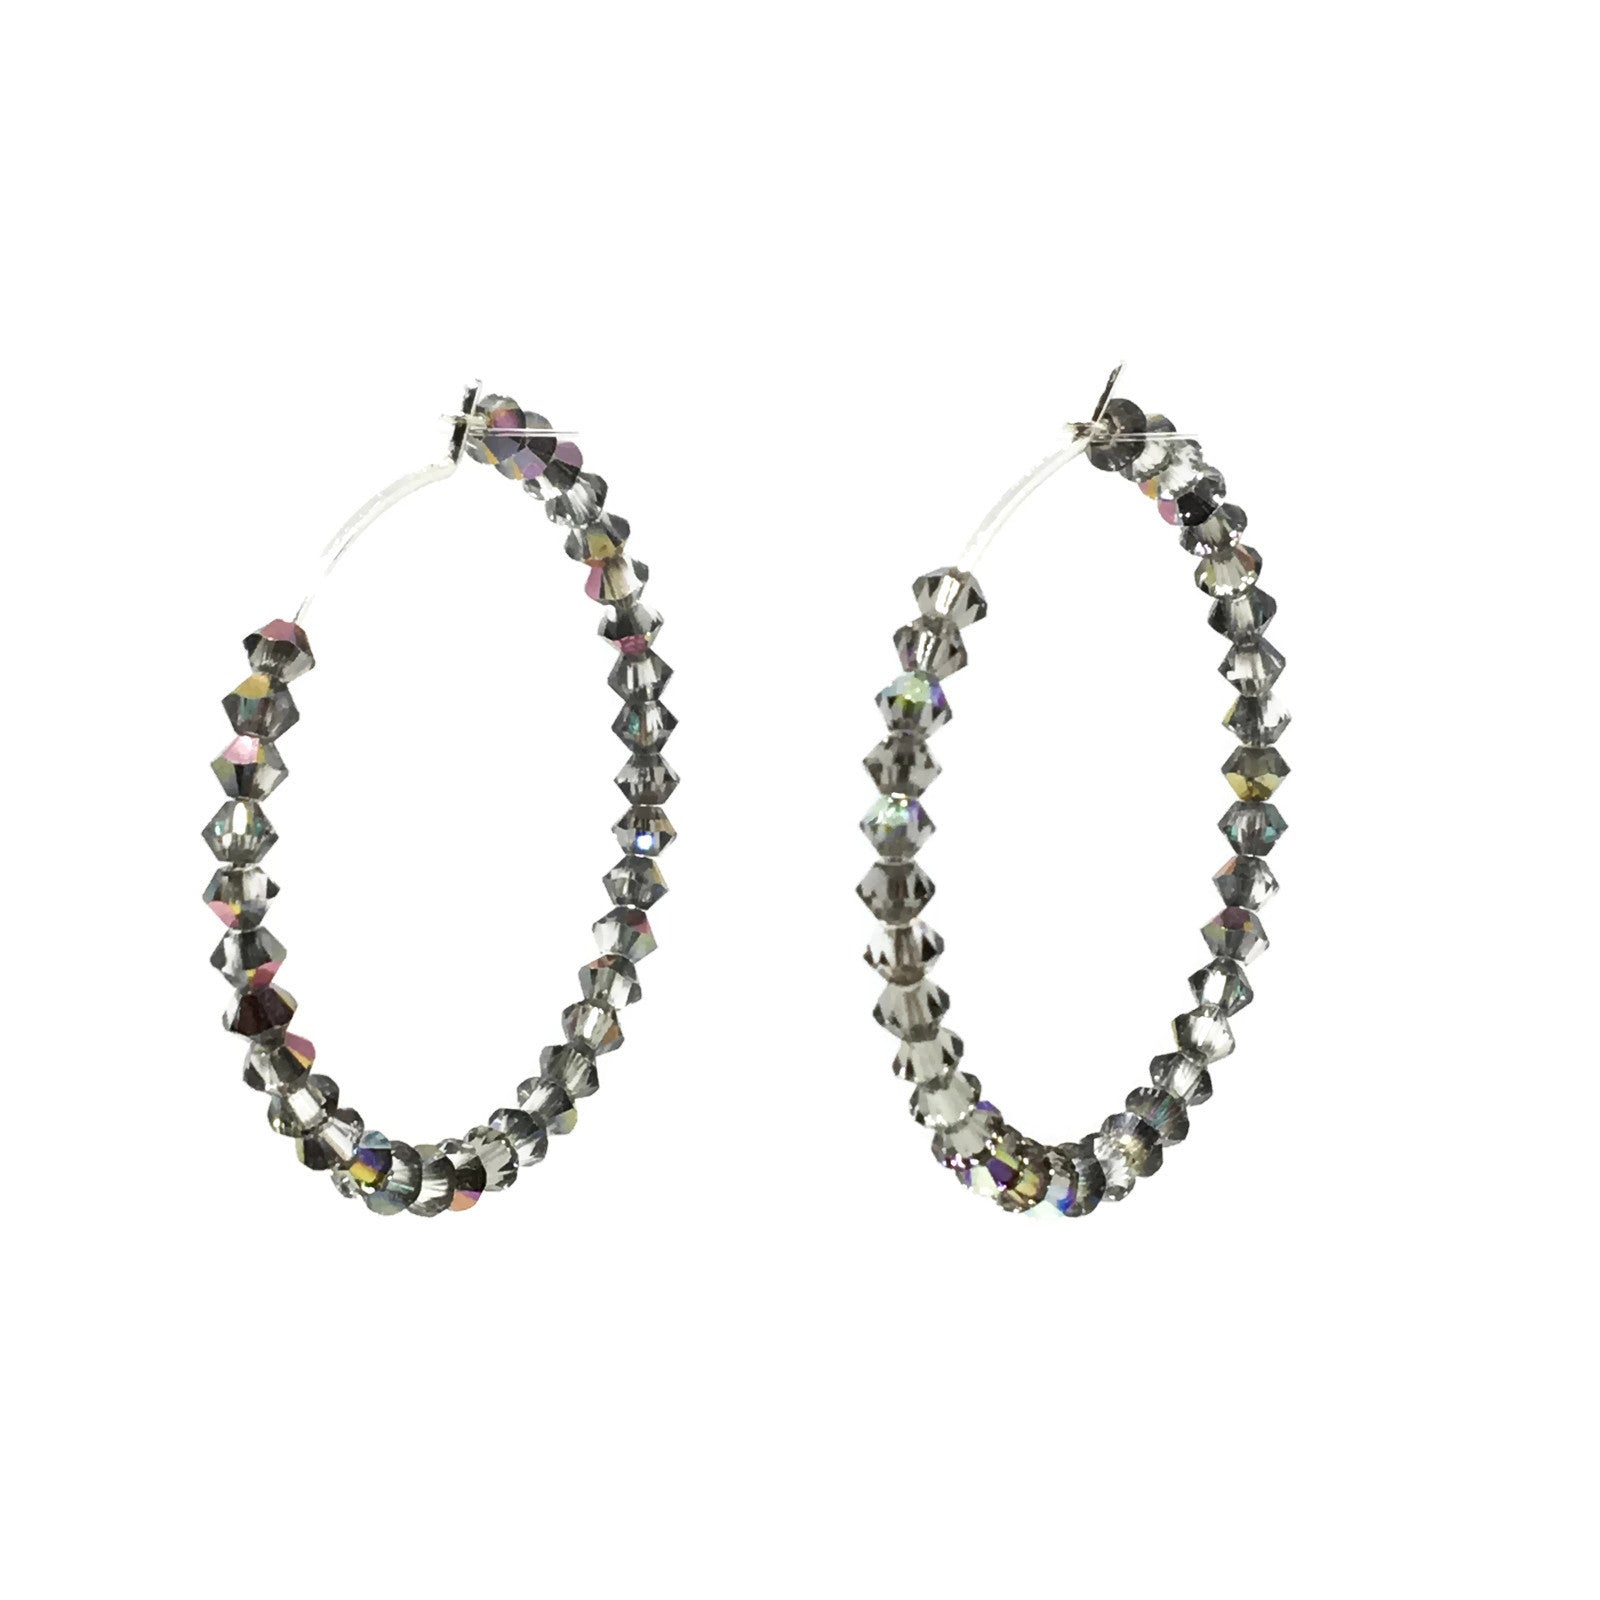 Vitrail Crystal Hoop Earrings